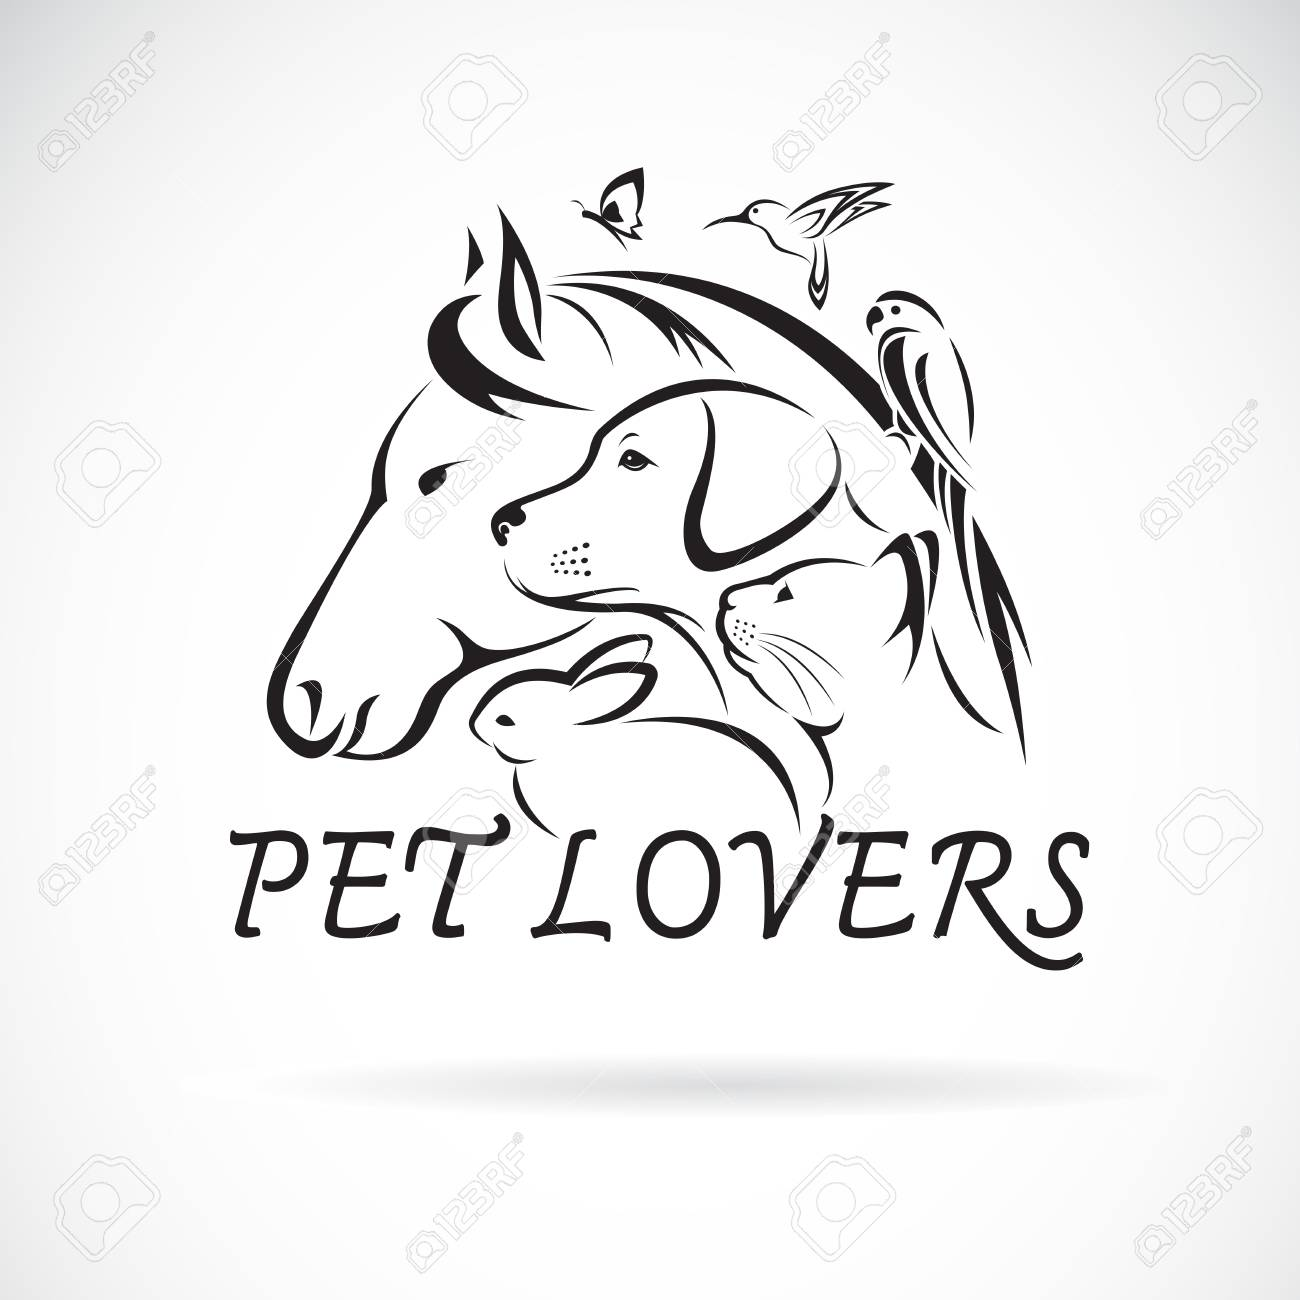 Vector Group Of Pets Horse Dog Cat Humming Bird Parrot Butterfly Rabbit Isolated On White Background Pet Icon Or Logo Easy Editable Layered Vector Illustration Royalty Free Cliparts Vectors And Stock